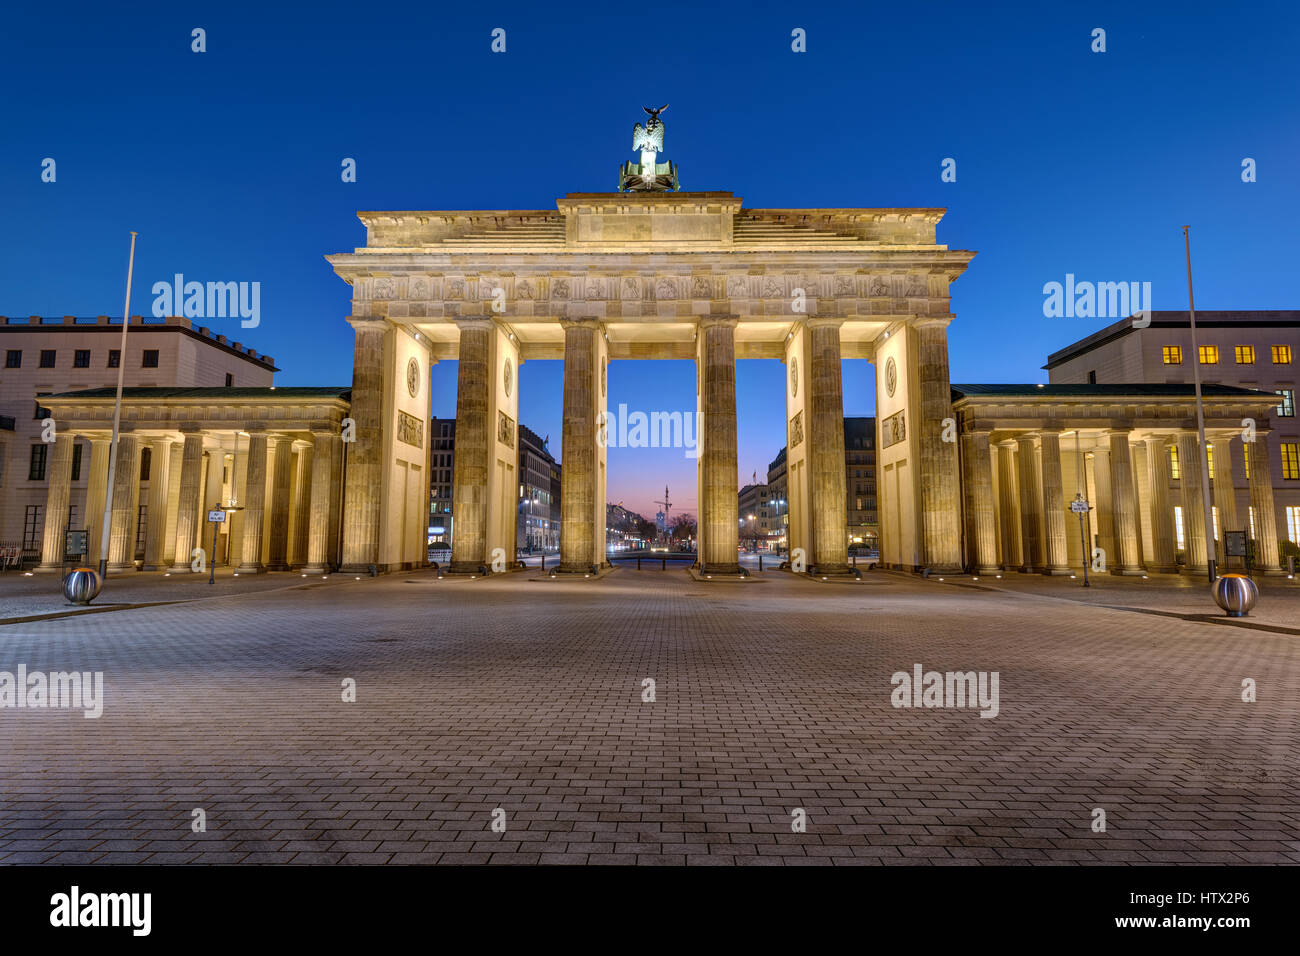 The back of the Brandenburger Tor in Berlin at night - Stock Image